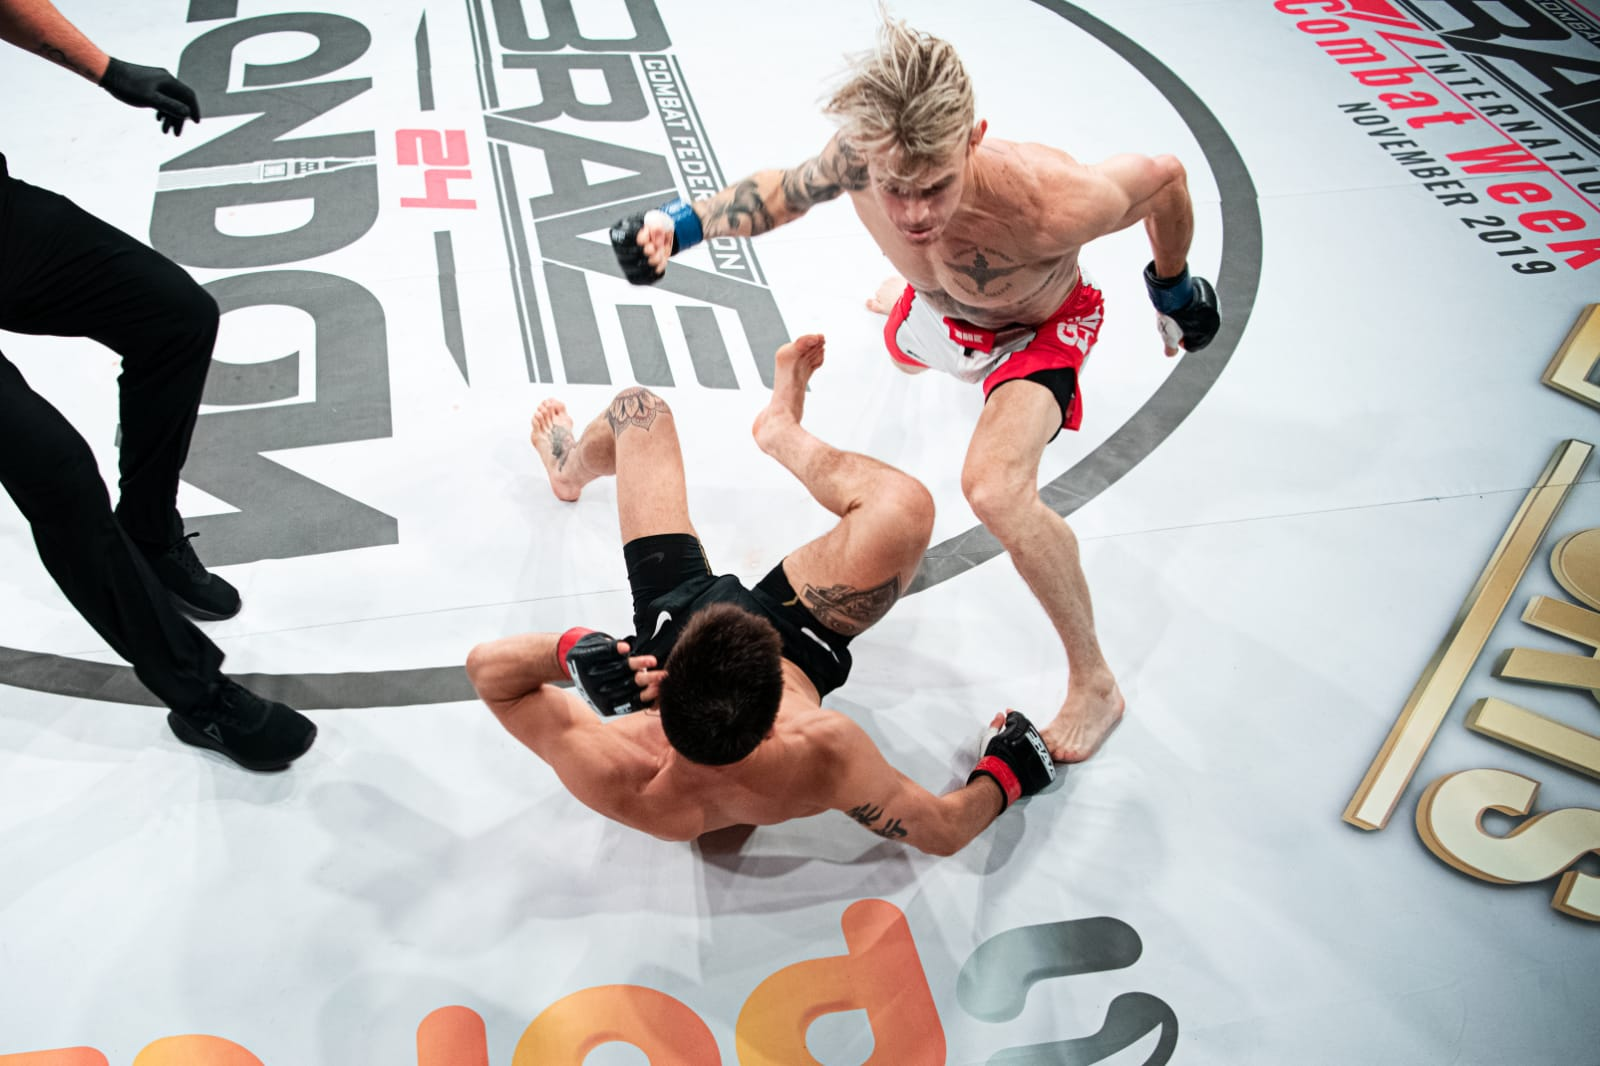 Gierszewski and Else promise to take over after KO wins at BRAVE 24 -